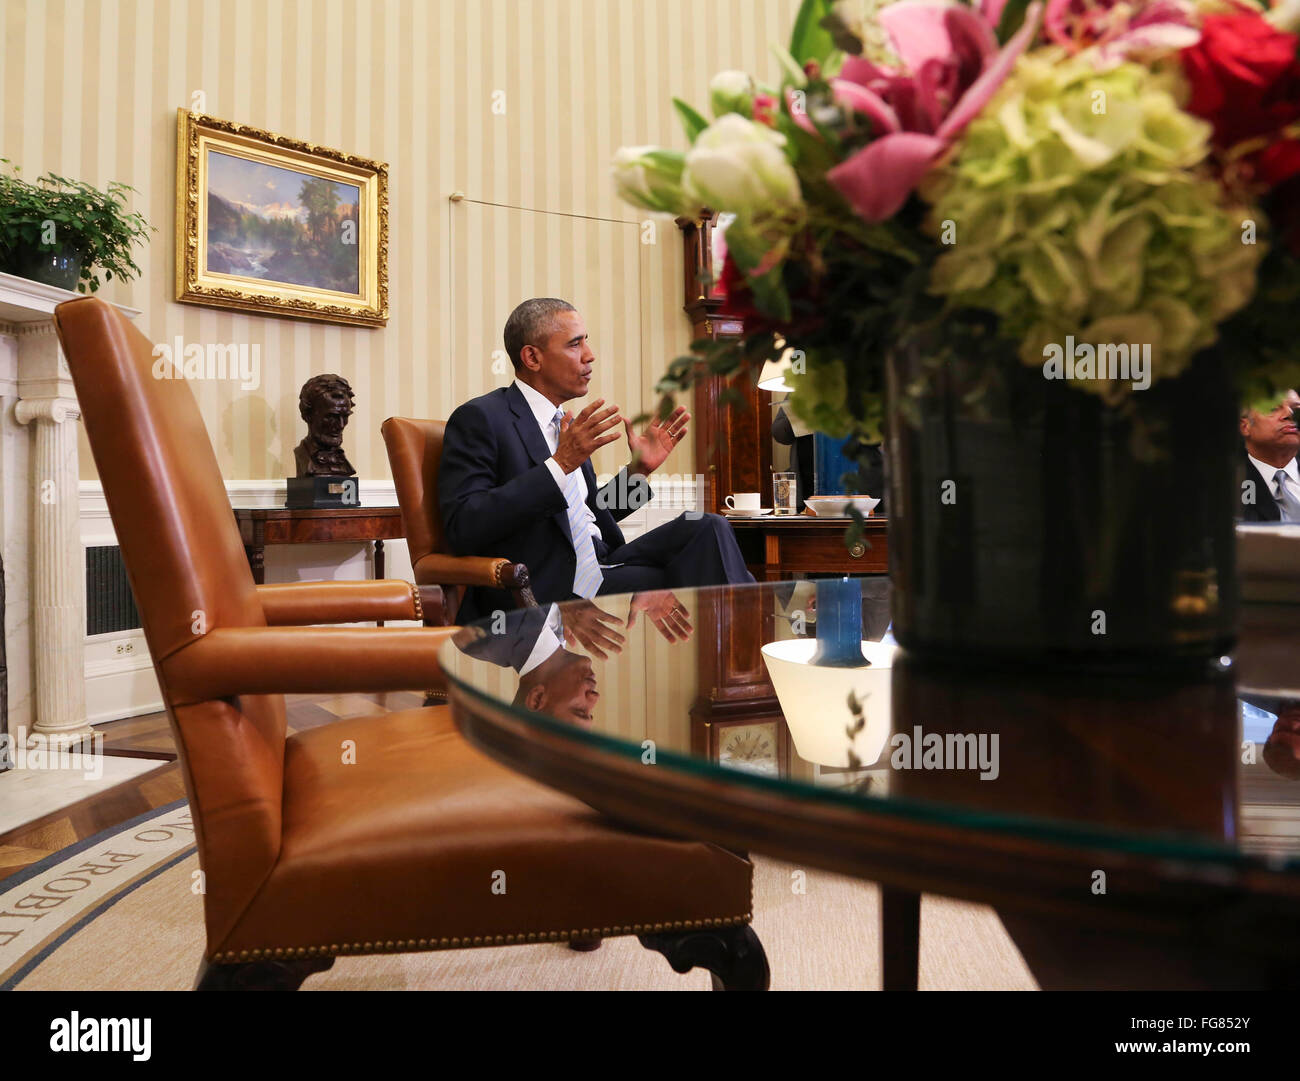 United States President Barack Obama meets with former National Security Advisor Tom Donilon (unseen) and former - Stock Image